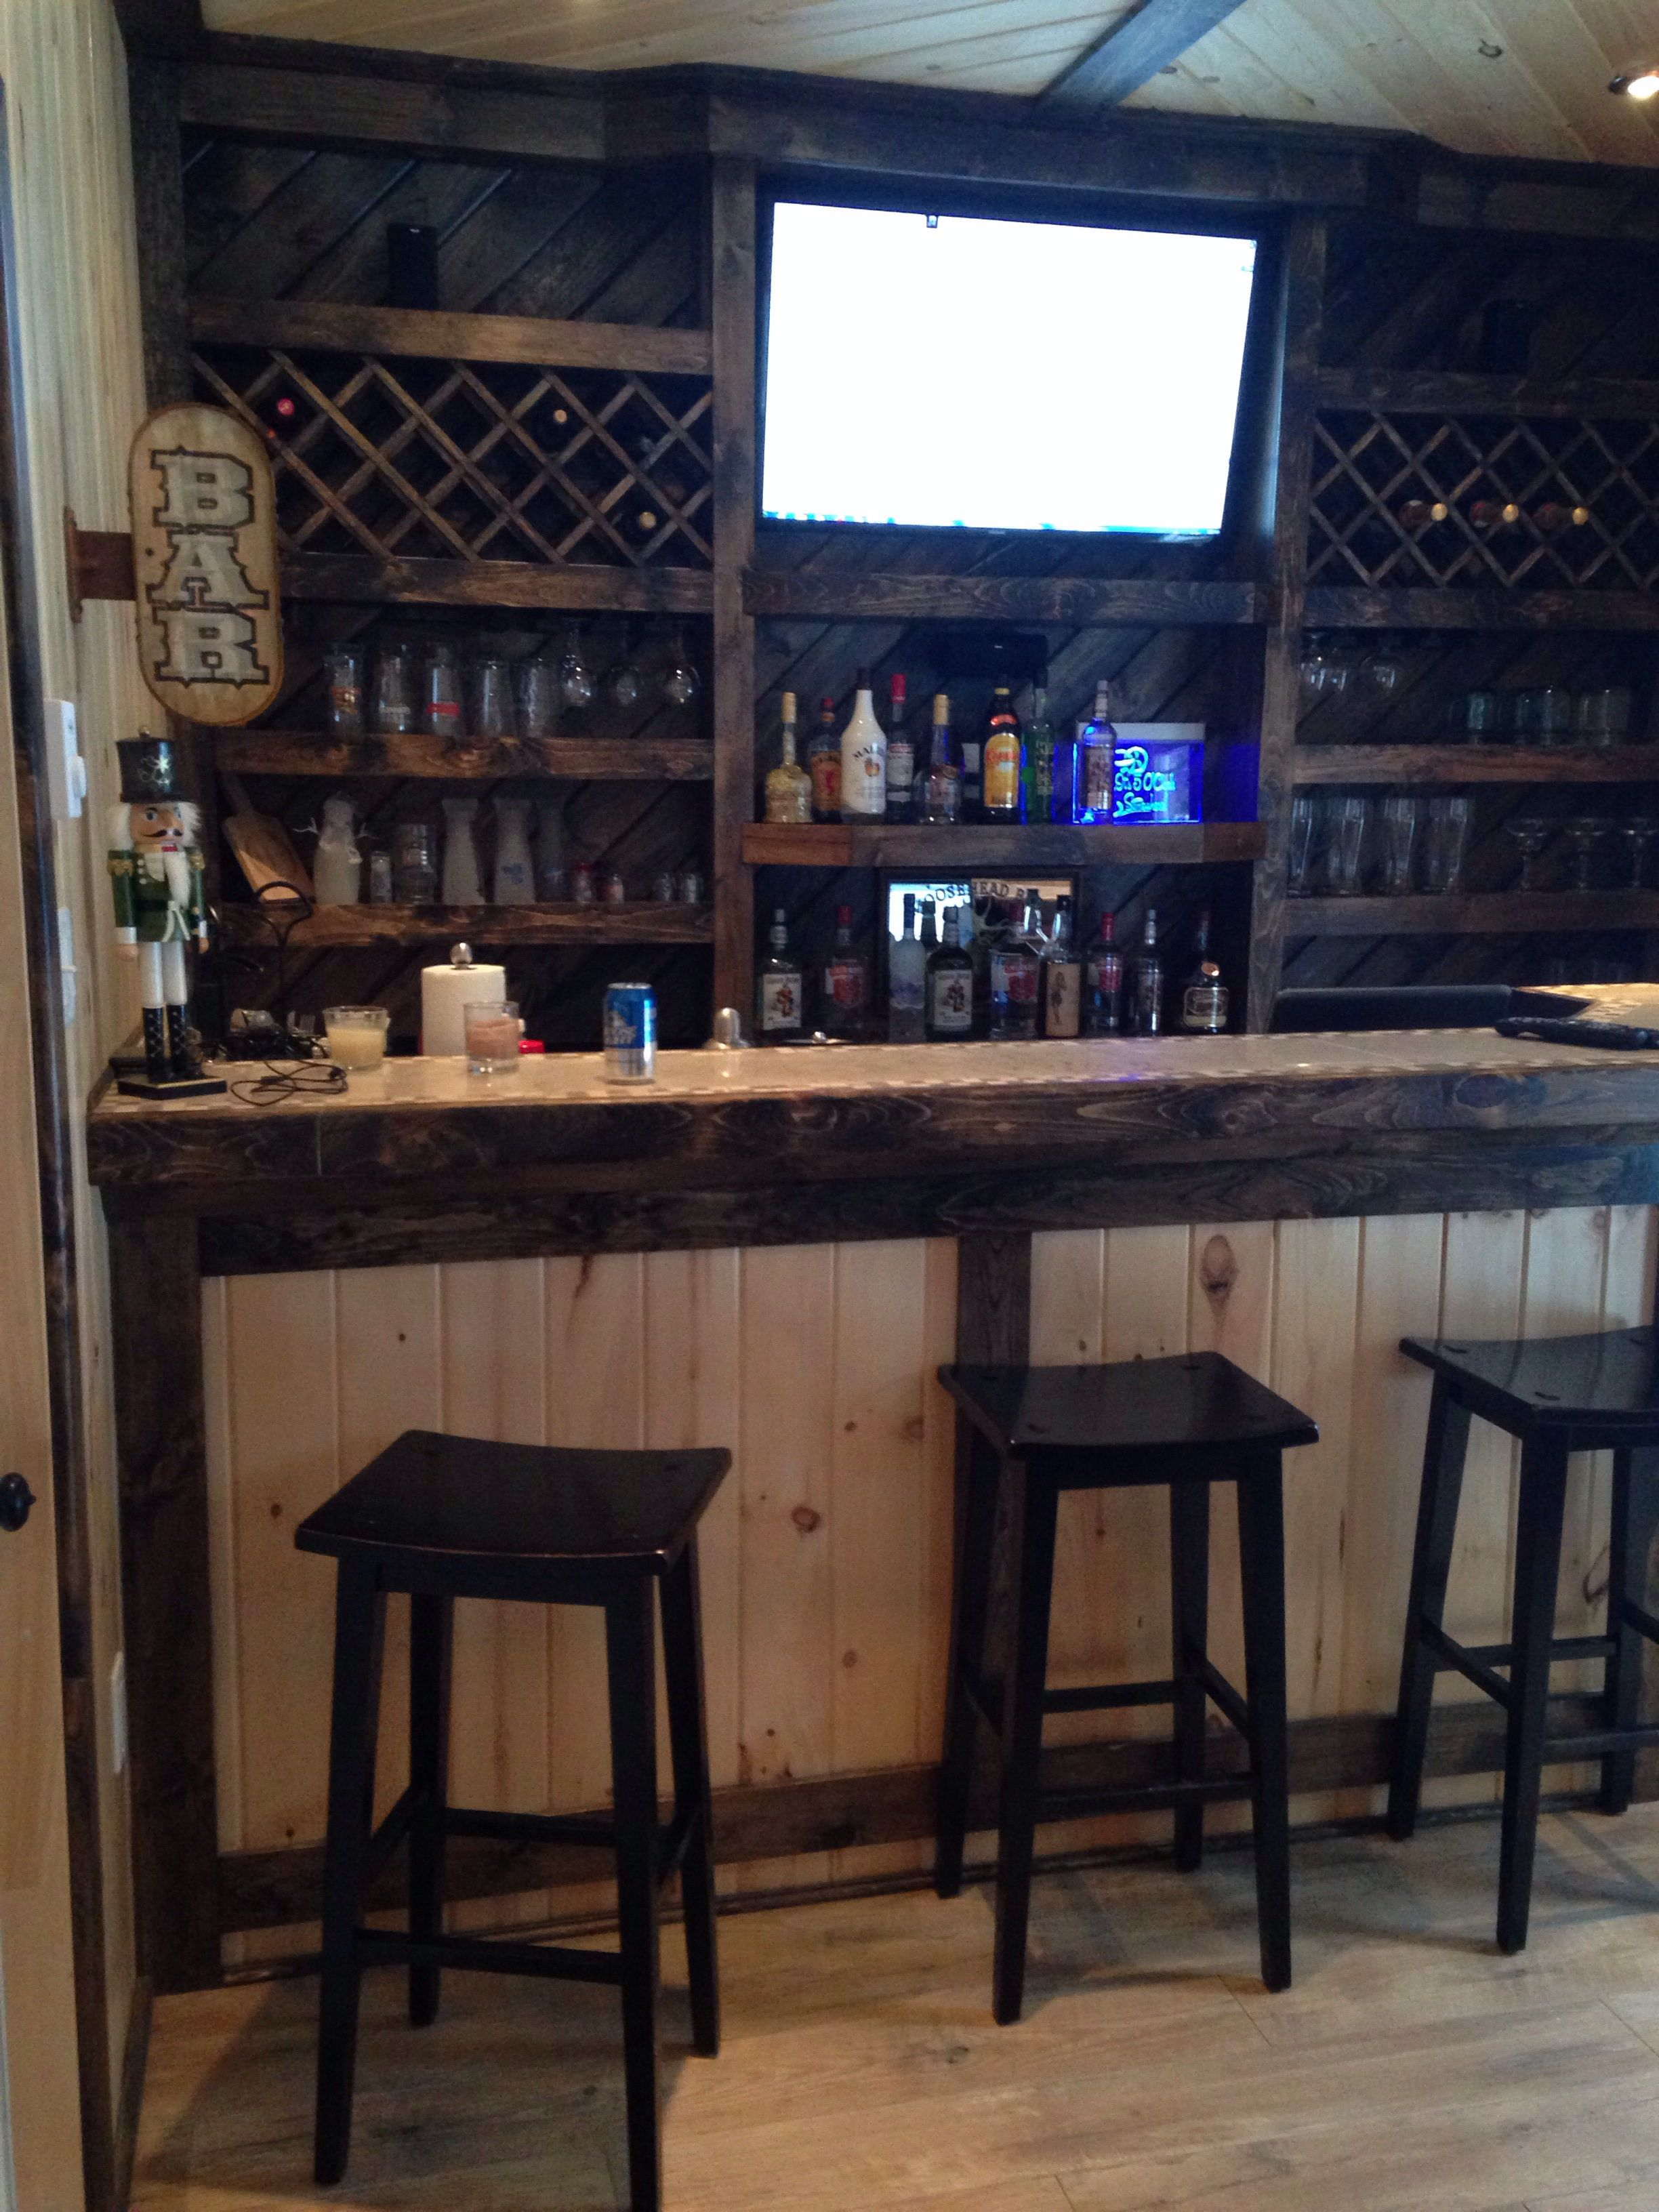 Bar Design Pour Maison garage bar idea for the hubby's man cave. like this but how